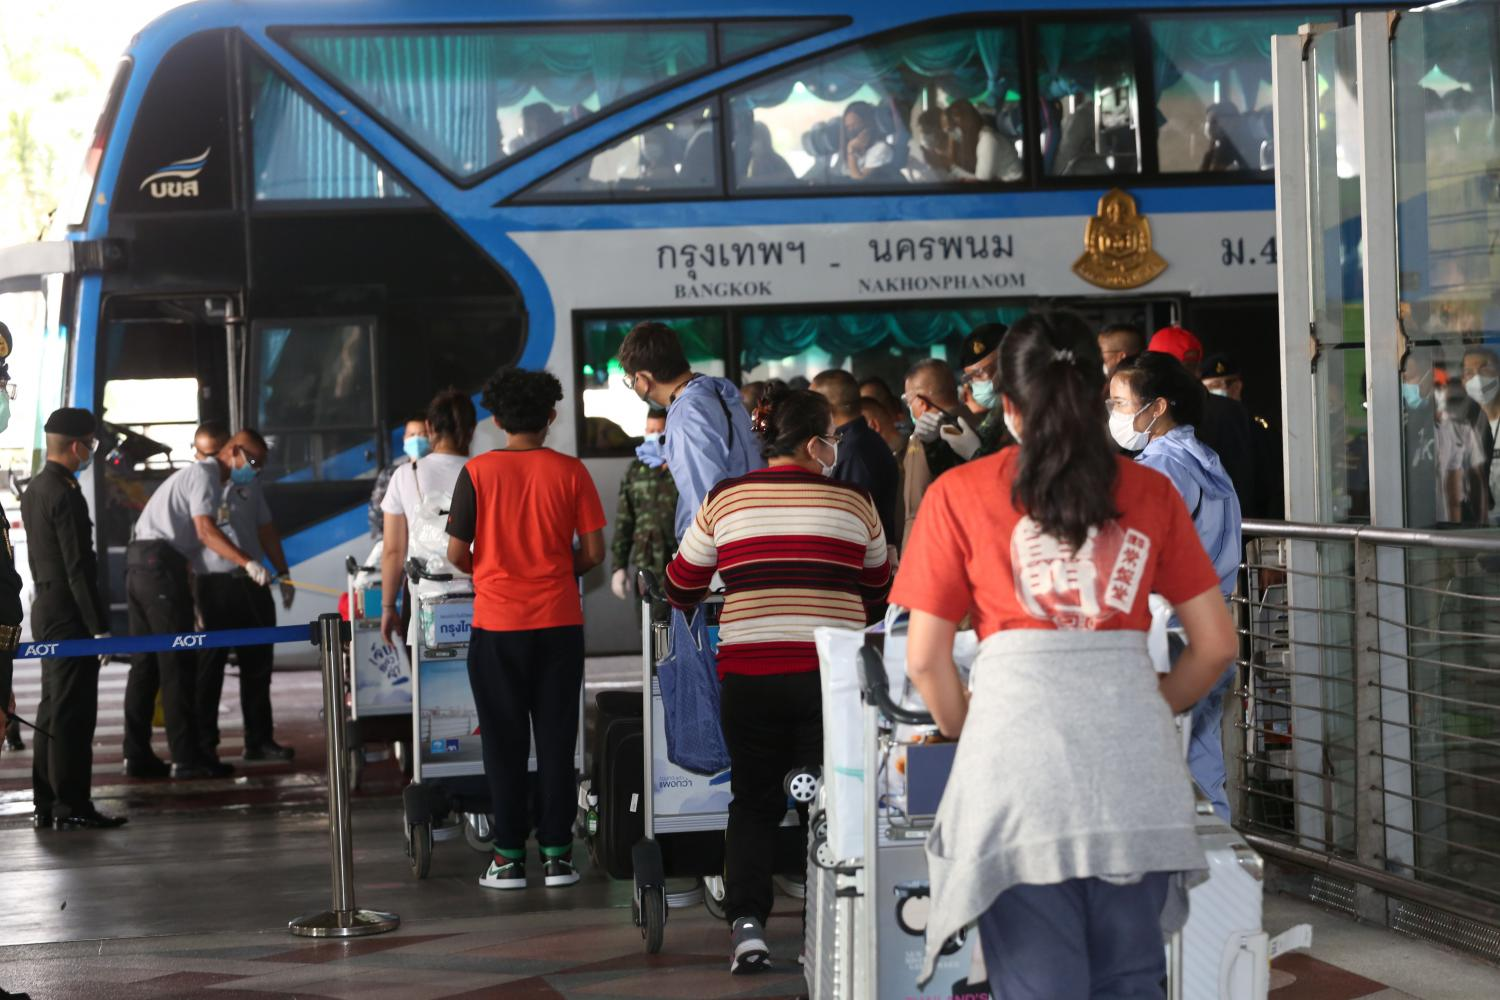 Twenty-six returnees from Japan go straight to a bus which will take them to a hotel in Bangkok for a 14-day quarantine. A total of 32 arrived from Haneda airport, but six did not pass screening and were sent to hospital. Varuth Hirunyatheb